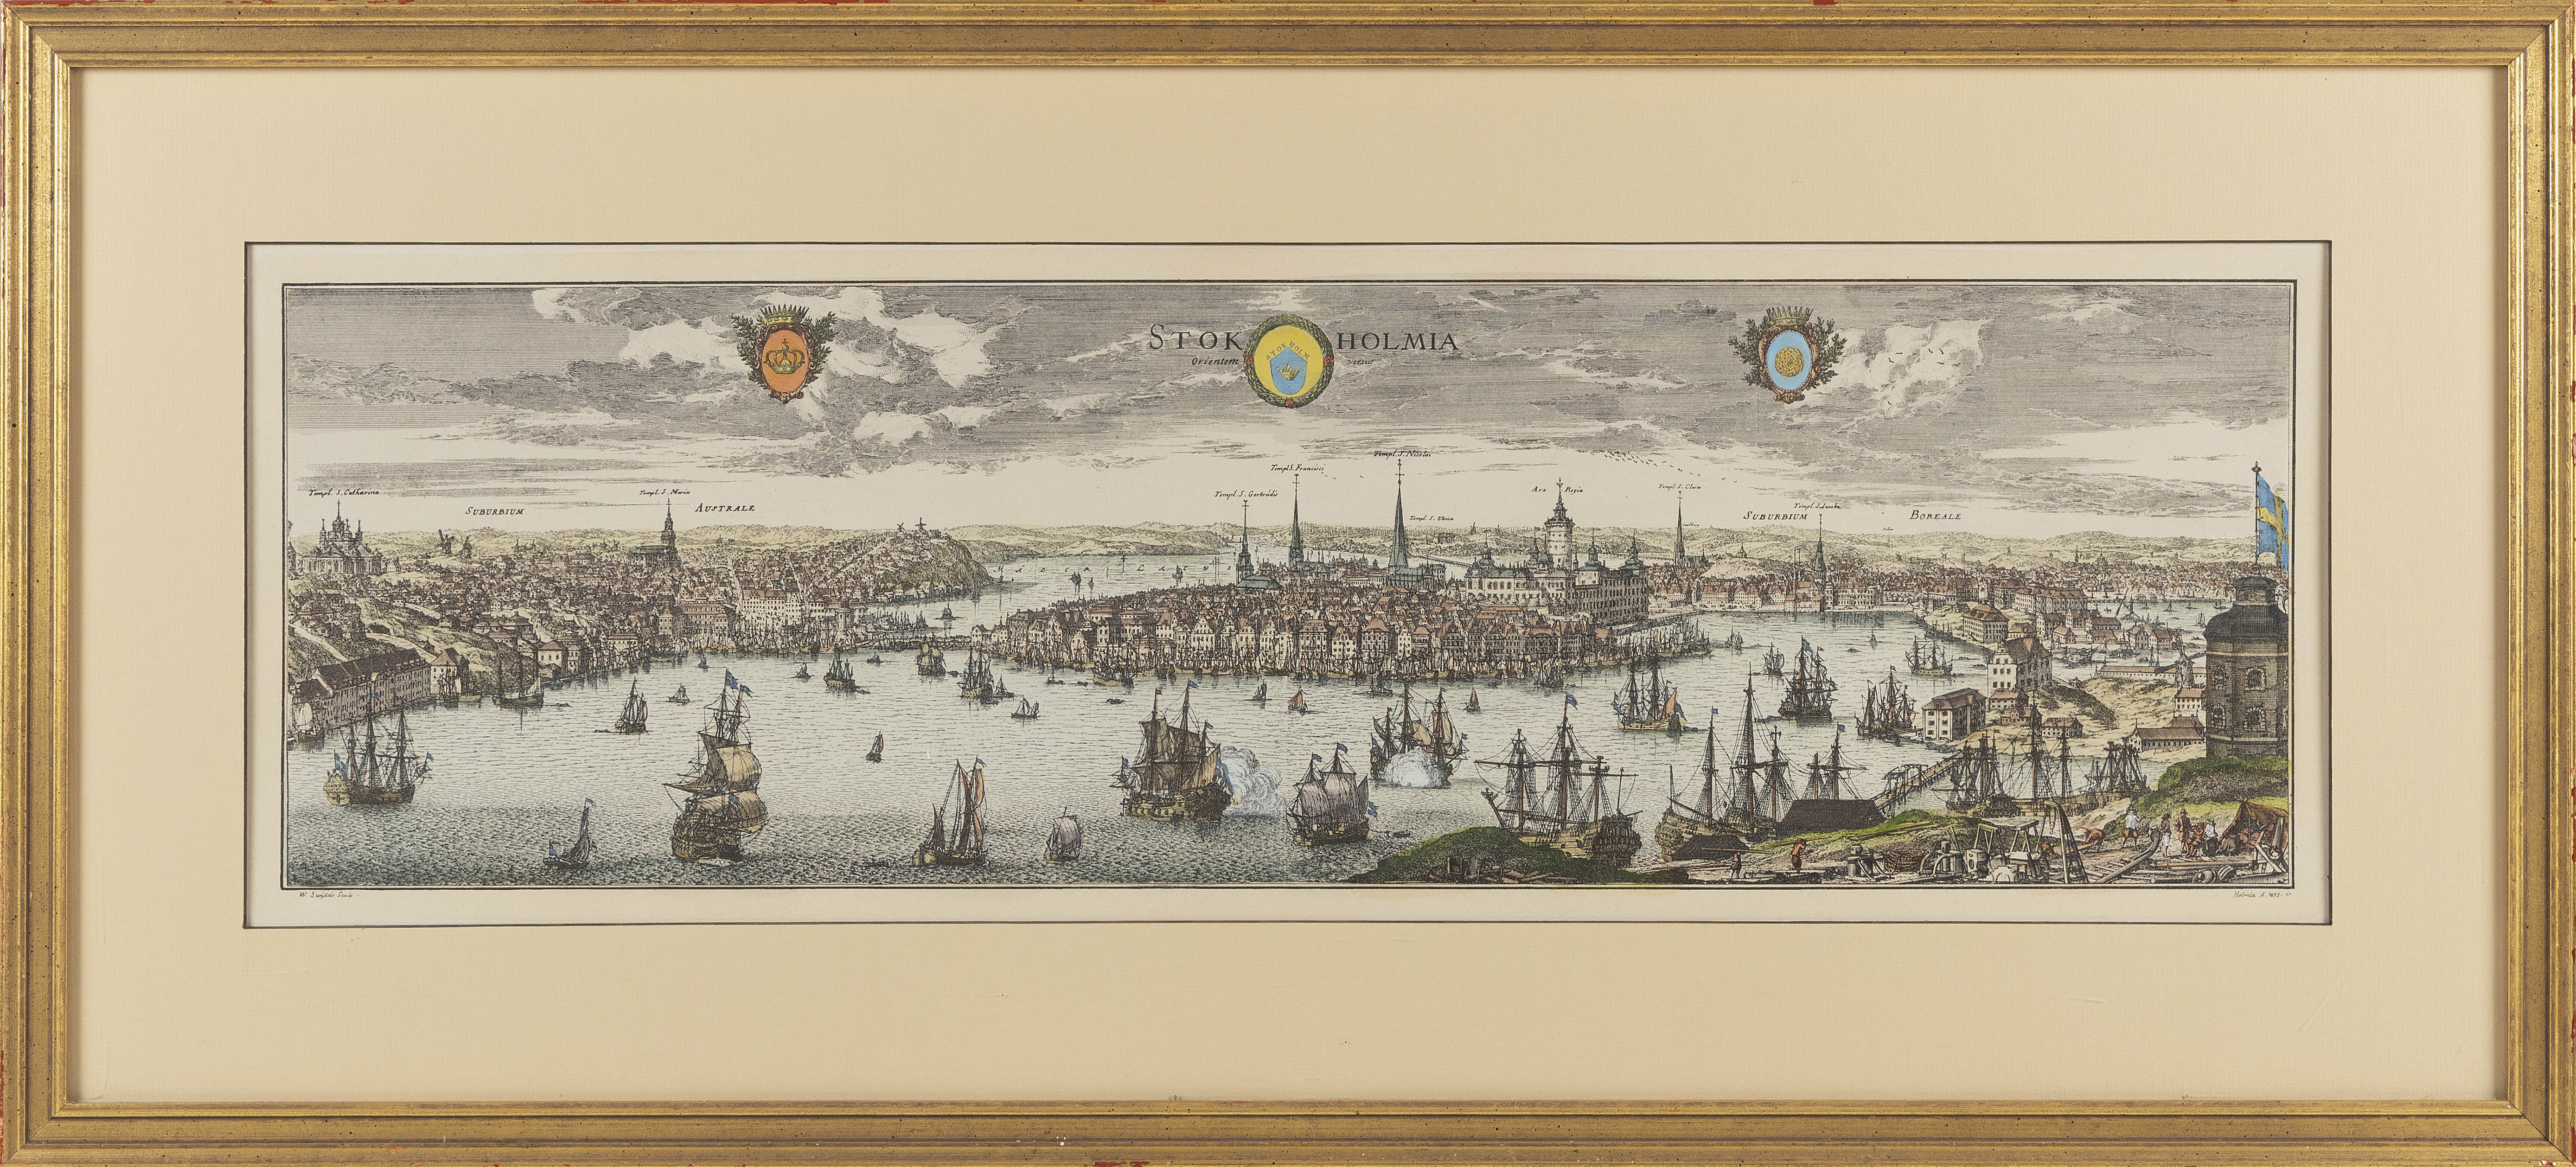 FRAMED HAND COLORED PANORAMIC MAP OF STOCKHOLM 19th Century 10.5